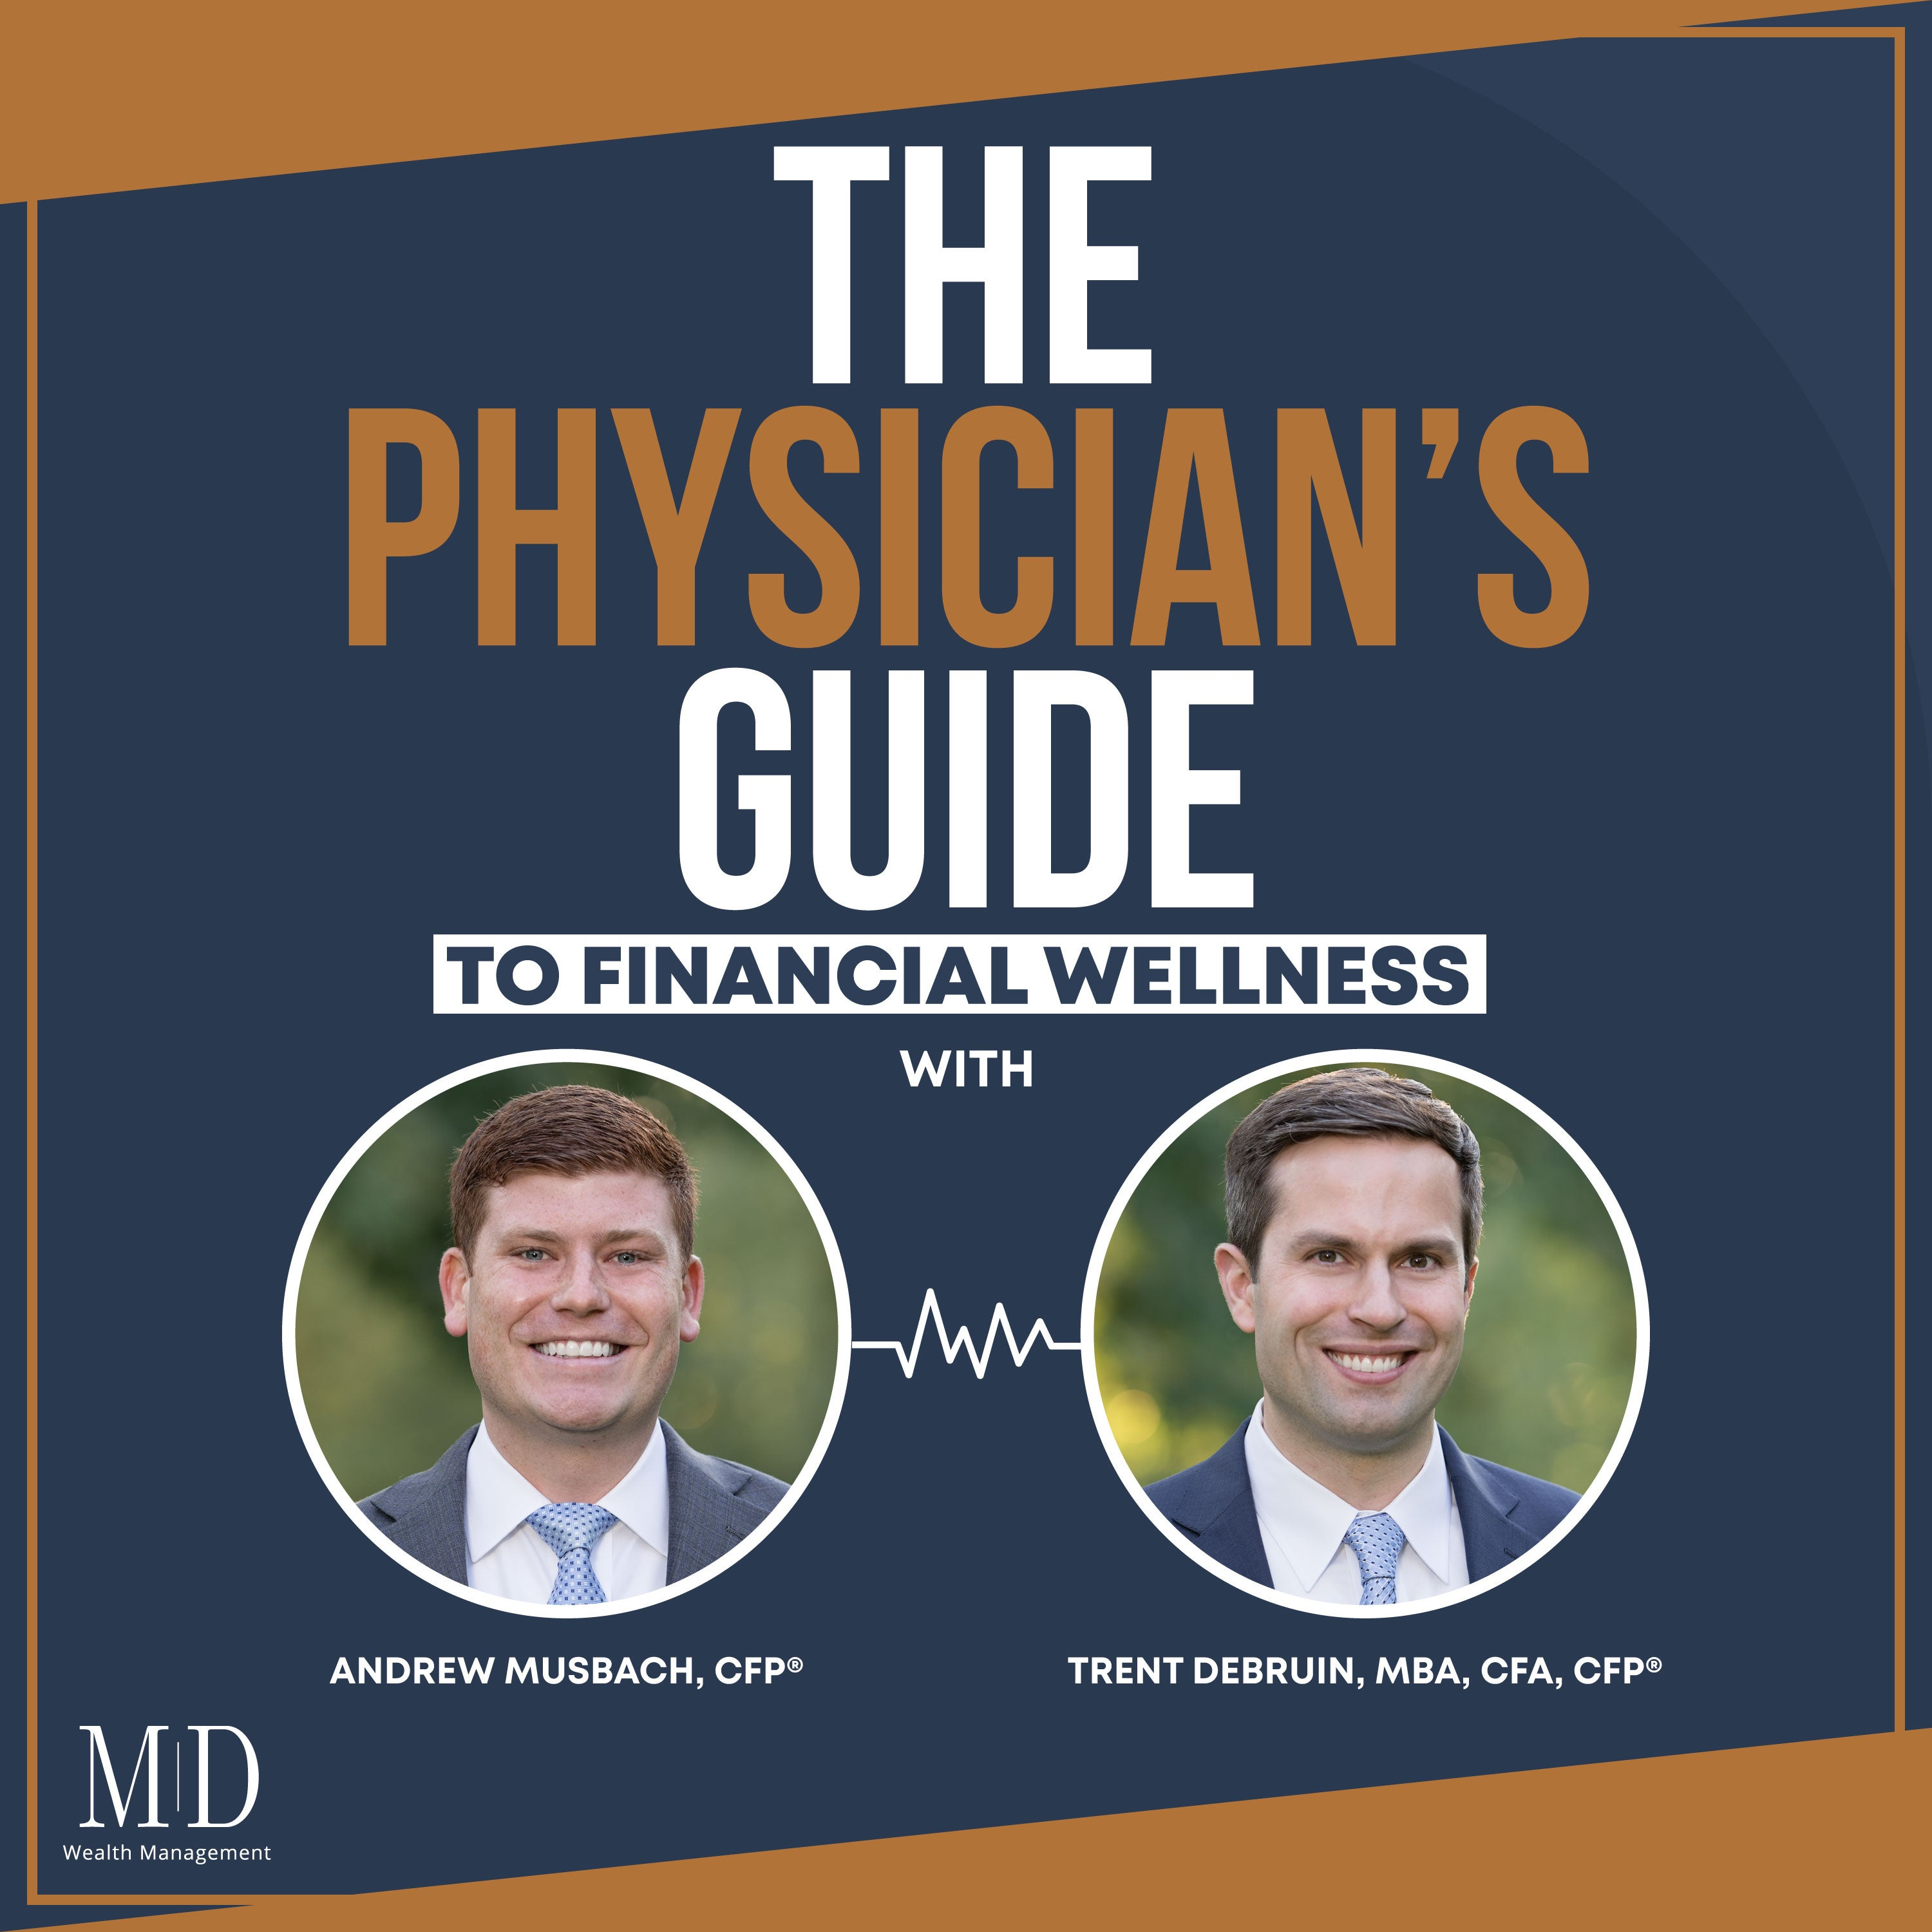 The Physician's Guide